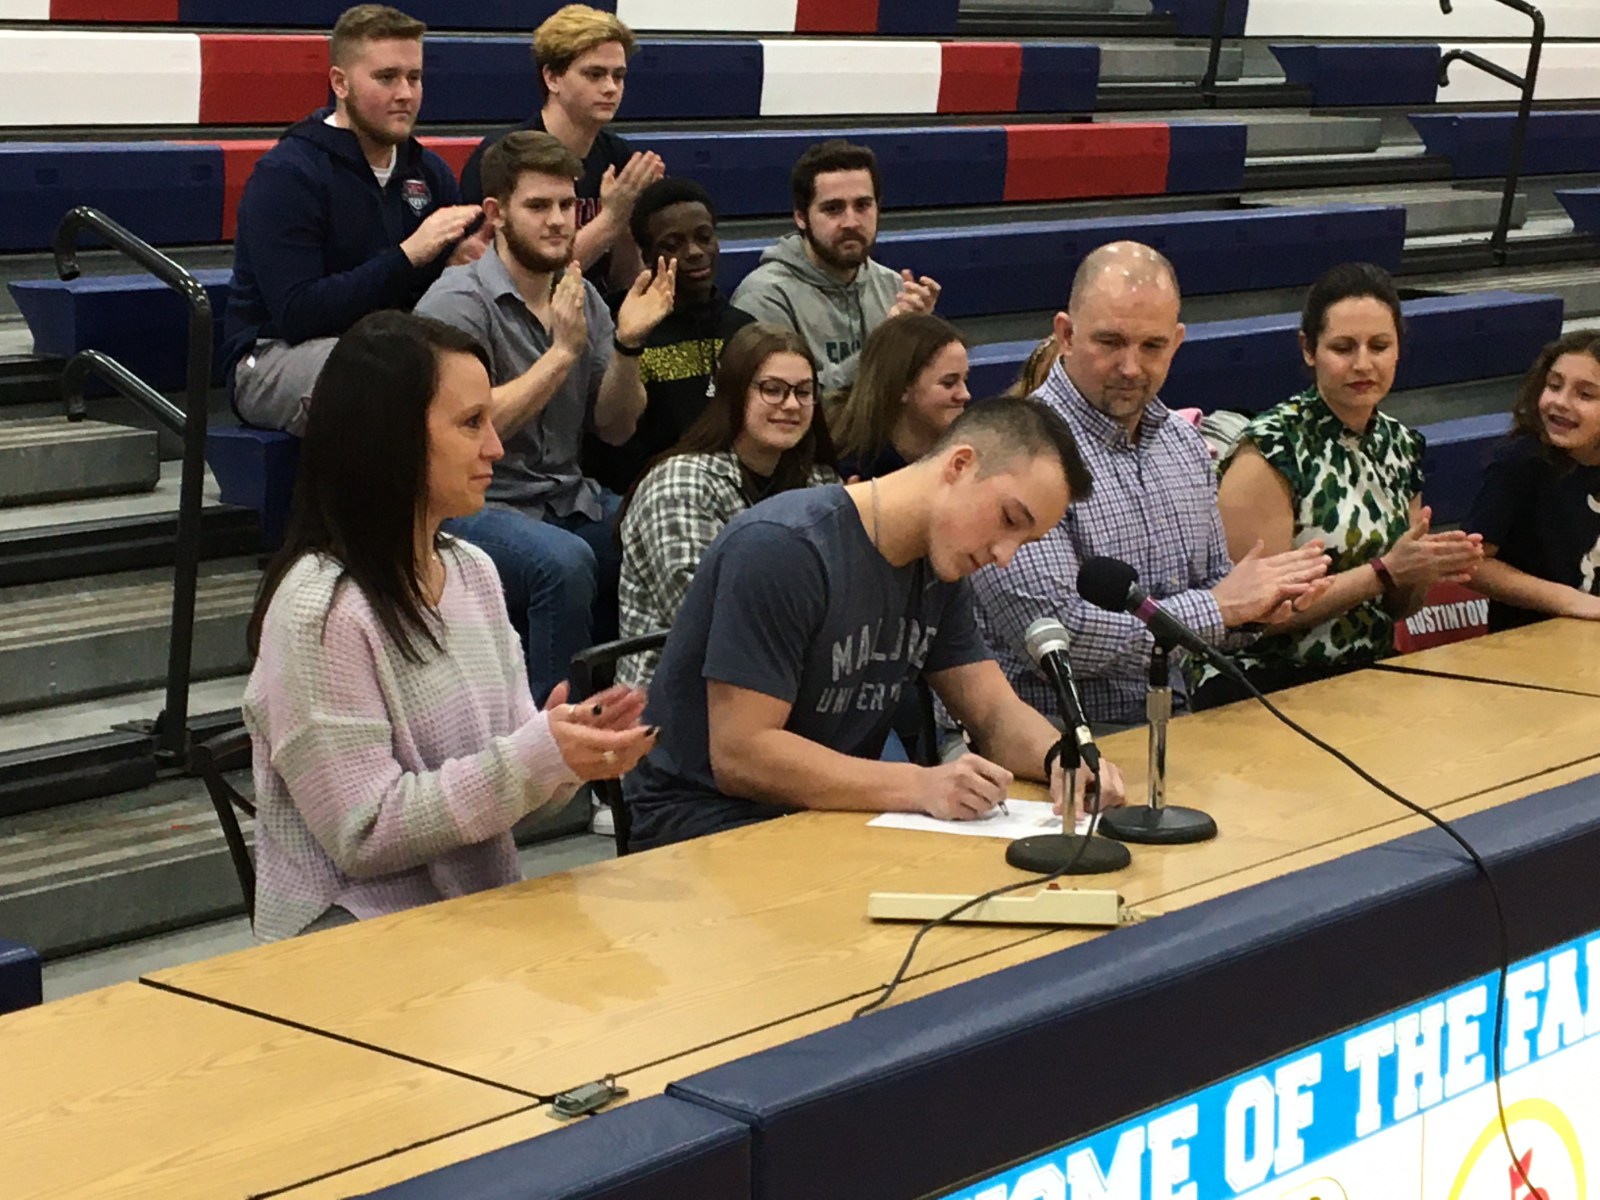 Gabe Faunda signs with Malone College for Baseball